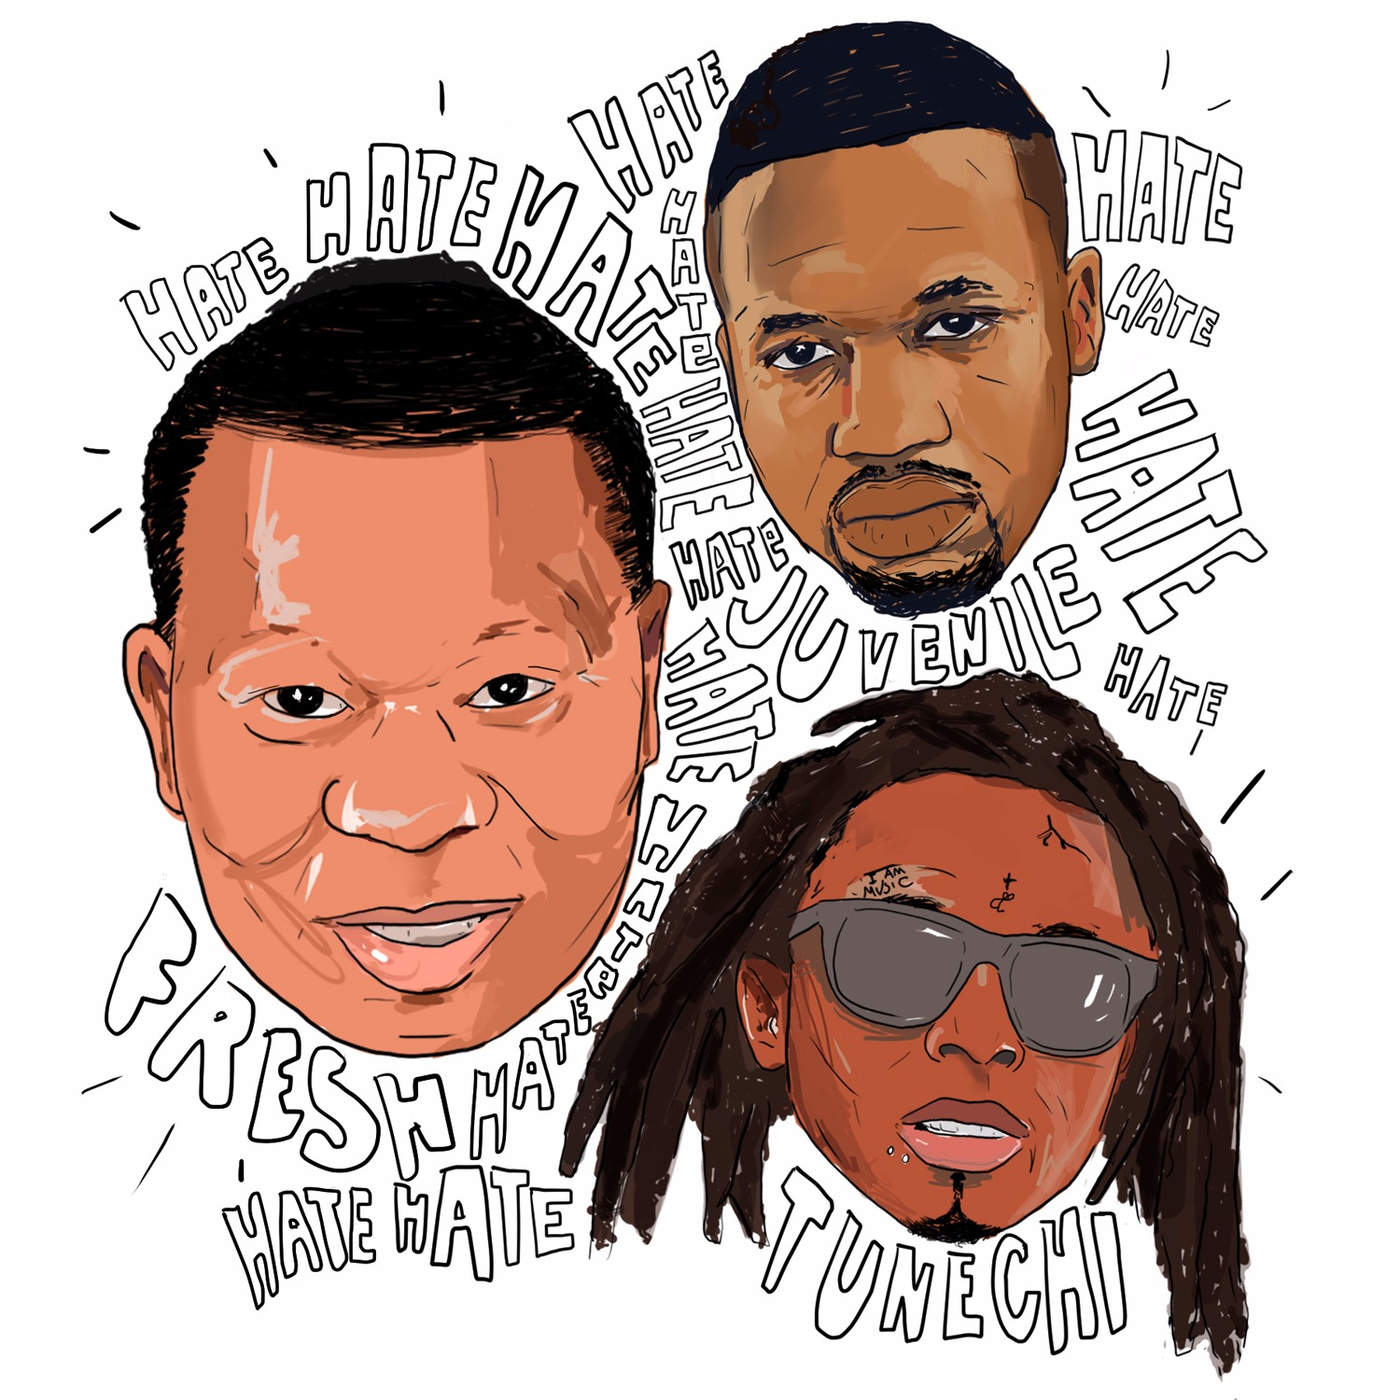 Mannie Fresh - Hate (feat. Juvenile & Tunechi) - Single Cover